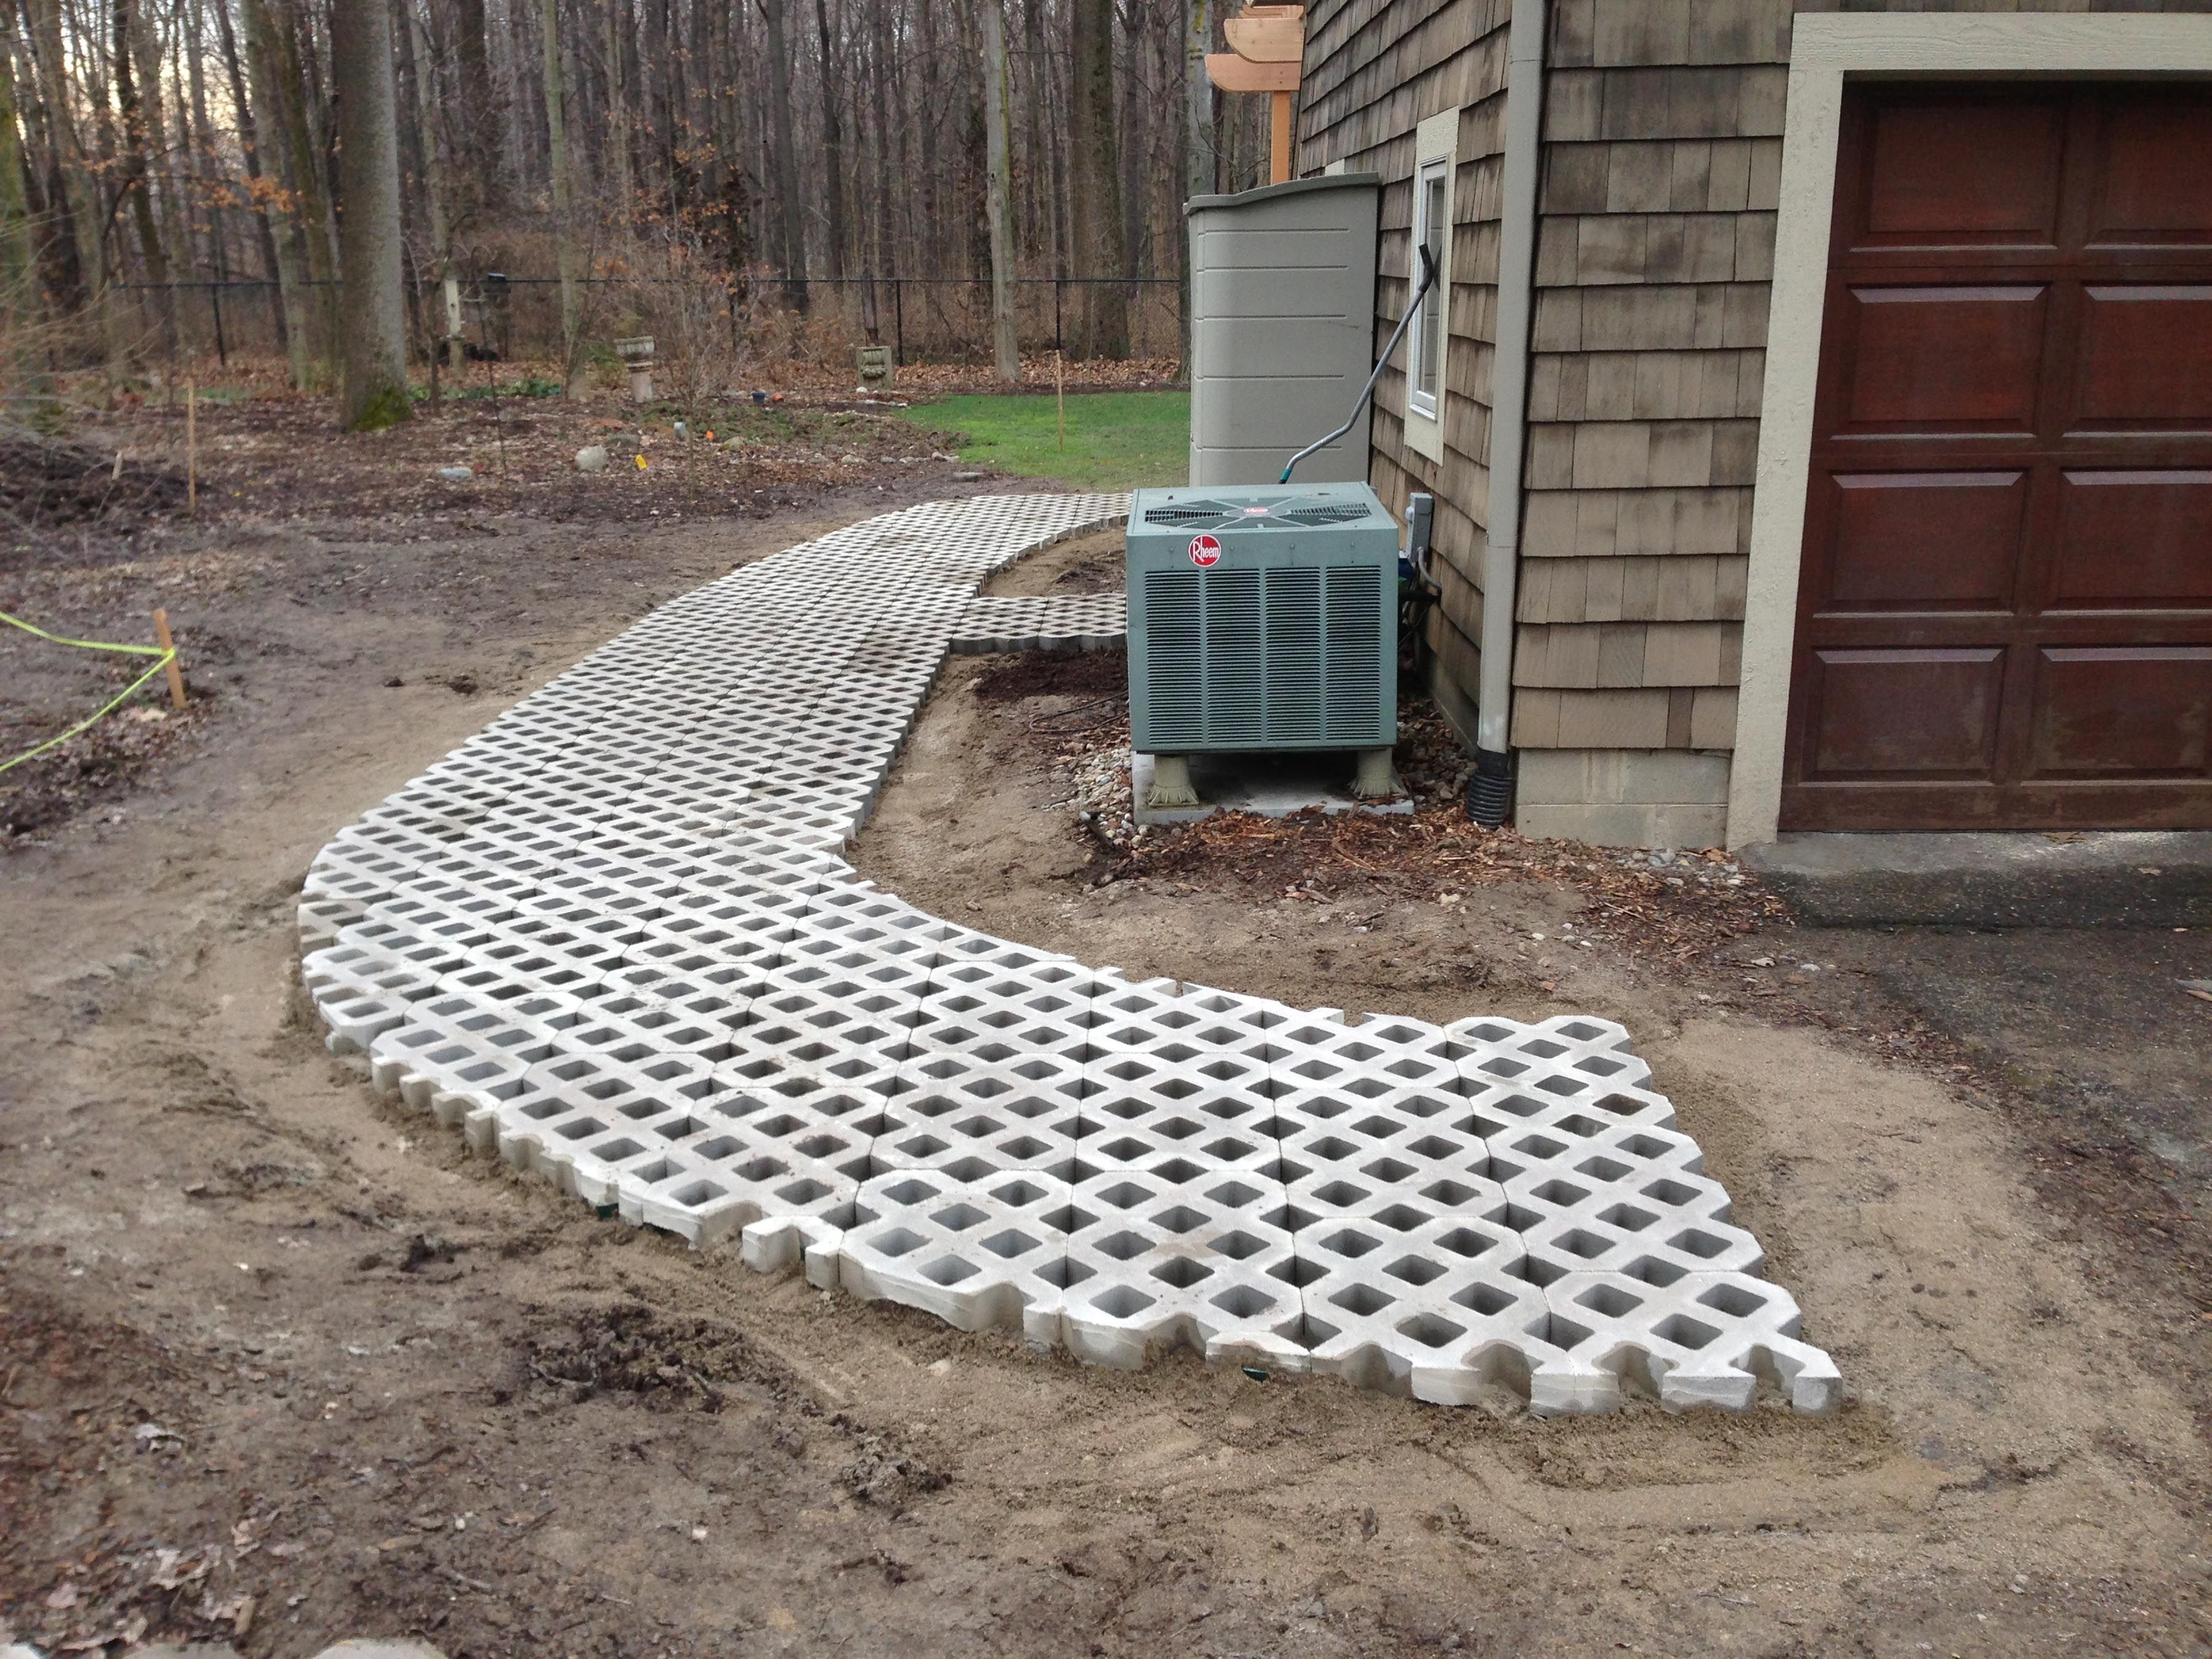 turf stone paver walkway | jed buxton design build | 327 exterior